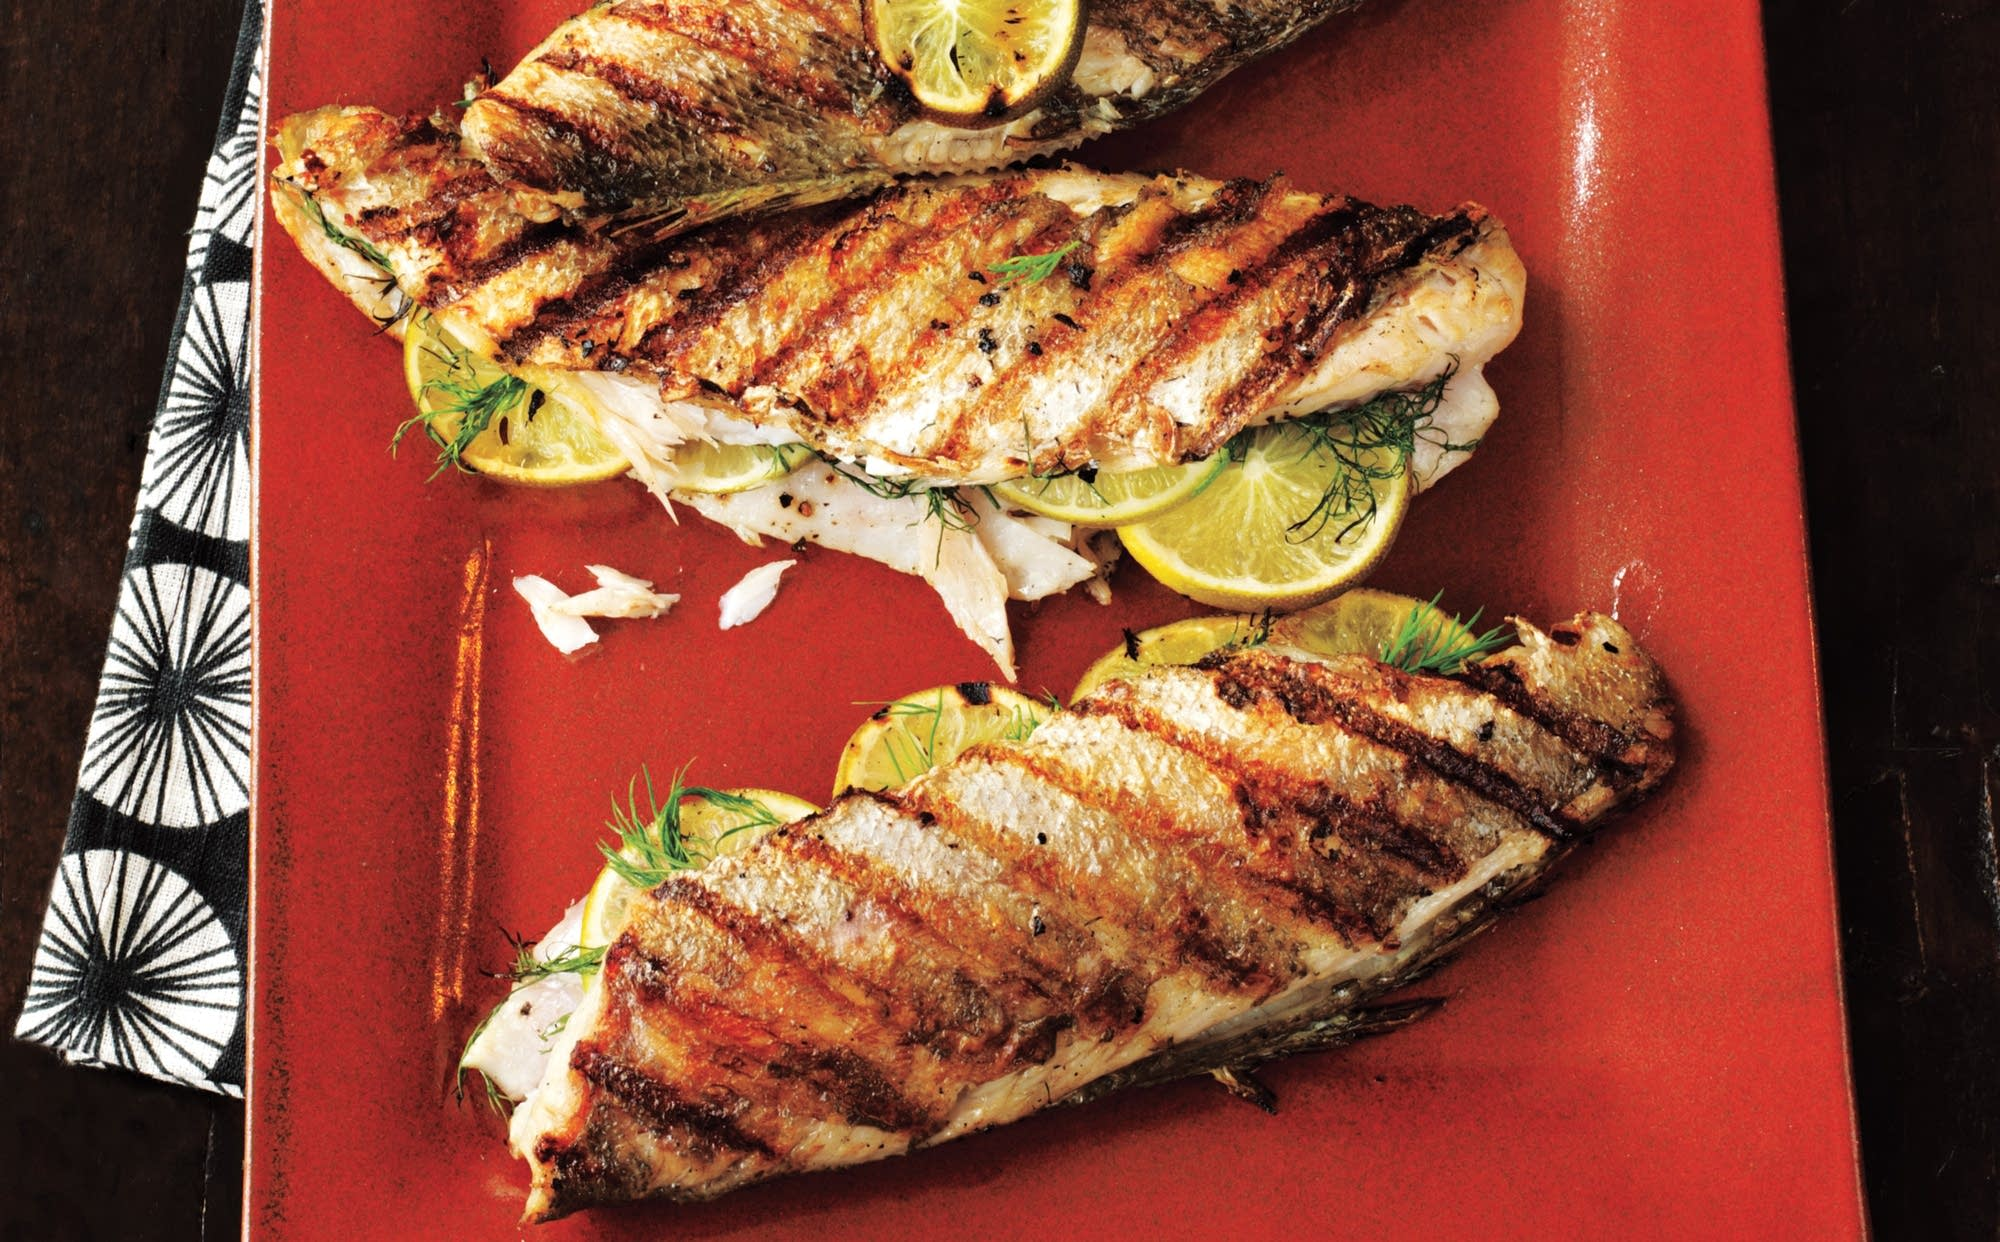 Grilled Trout The Splendid Table